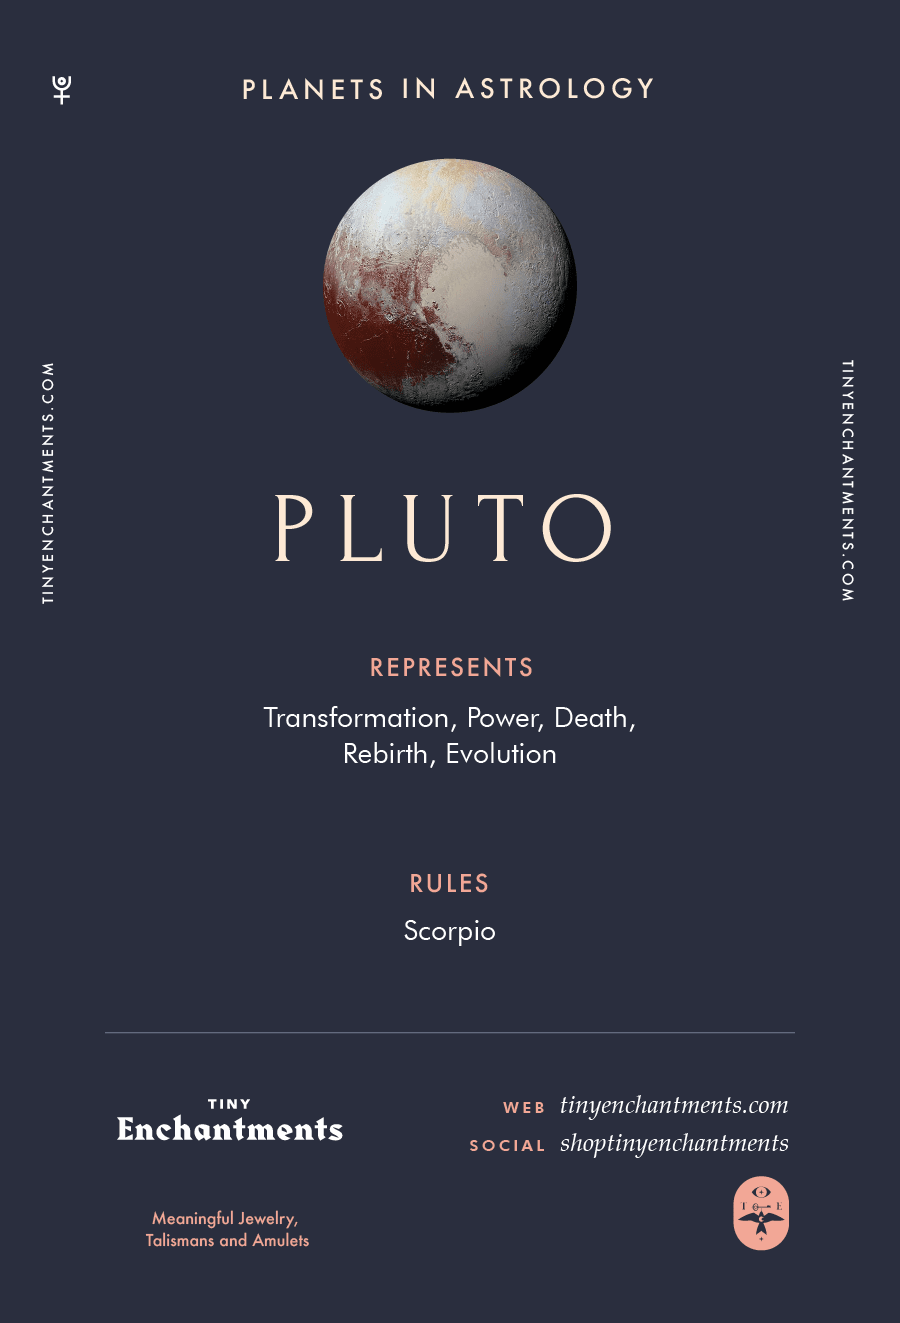 Pluto Sign in Astrology - Planet Meaning, Zodiac, Symbolism, Characteristics Infographic